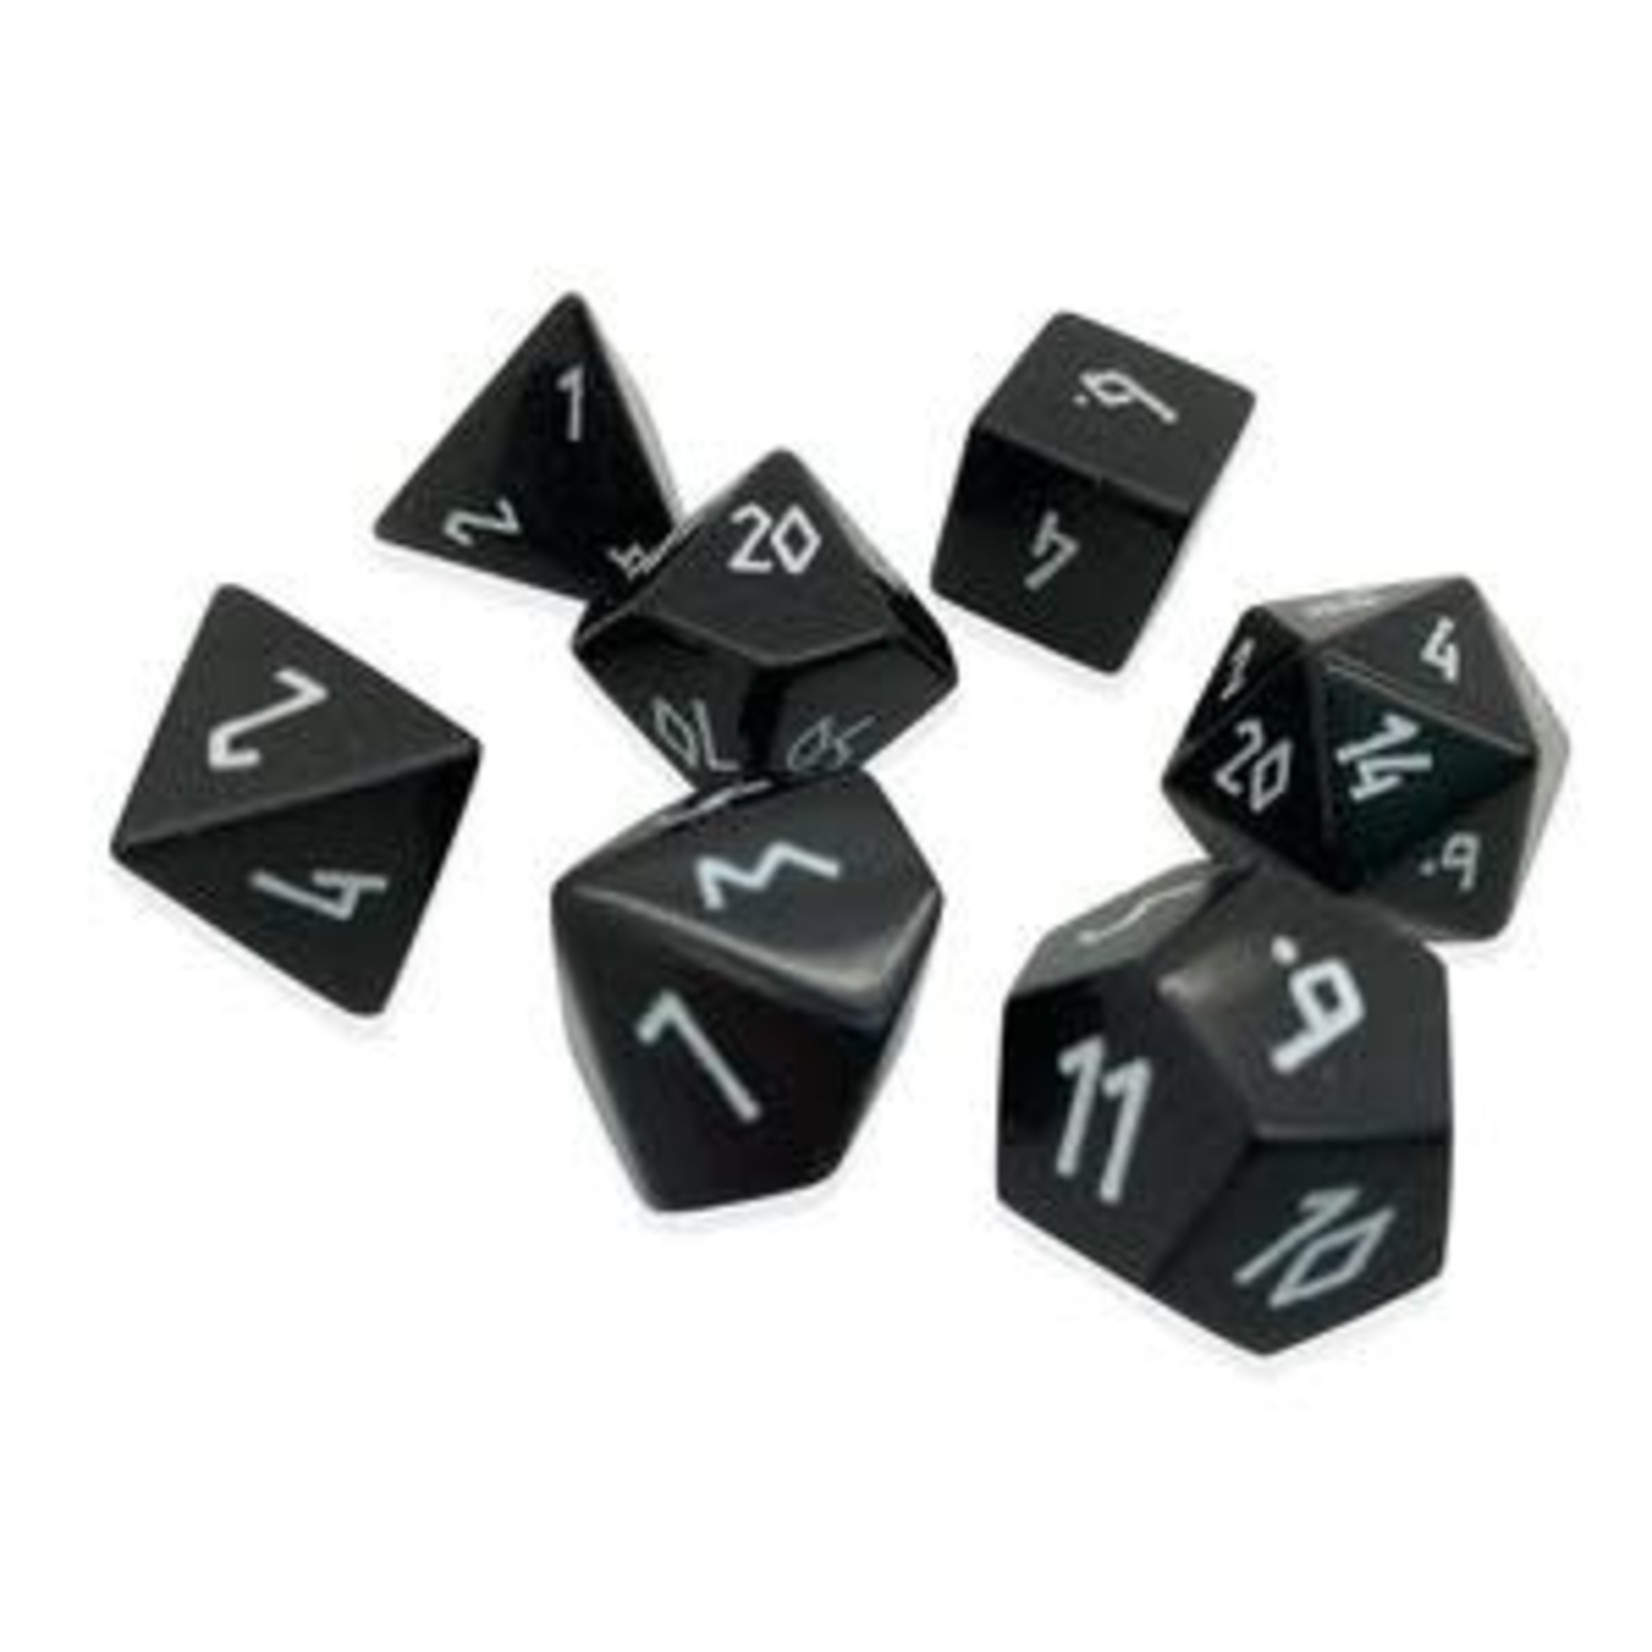 Norse Foundry Norse Foundry Dice: Gemstone Dice Set - Black Obsidian: White Font